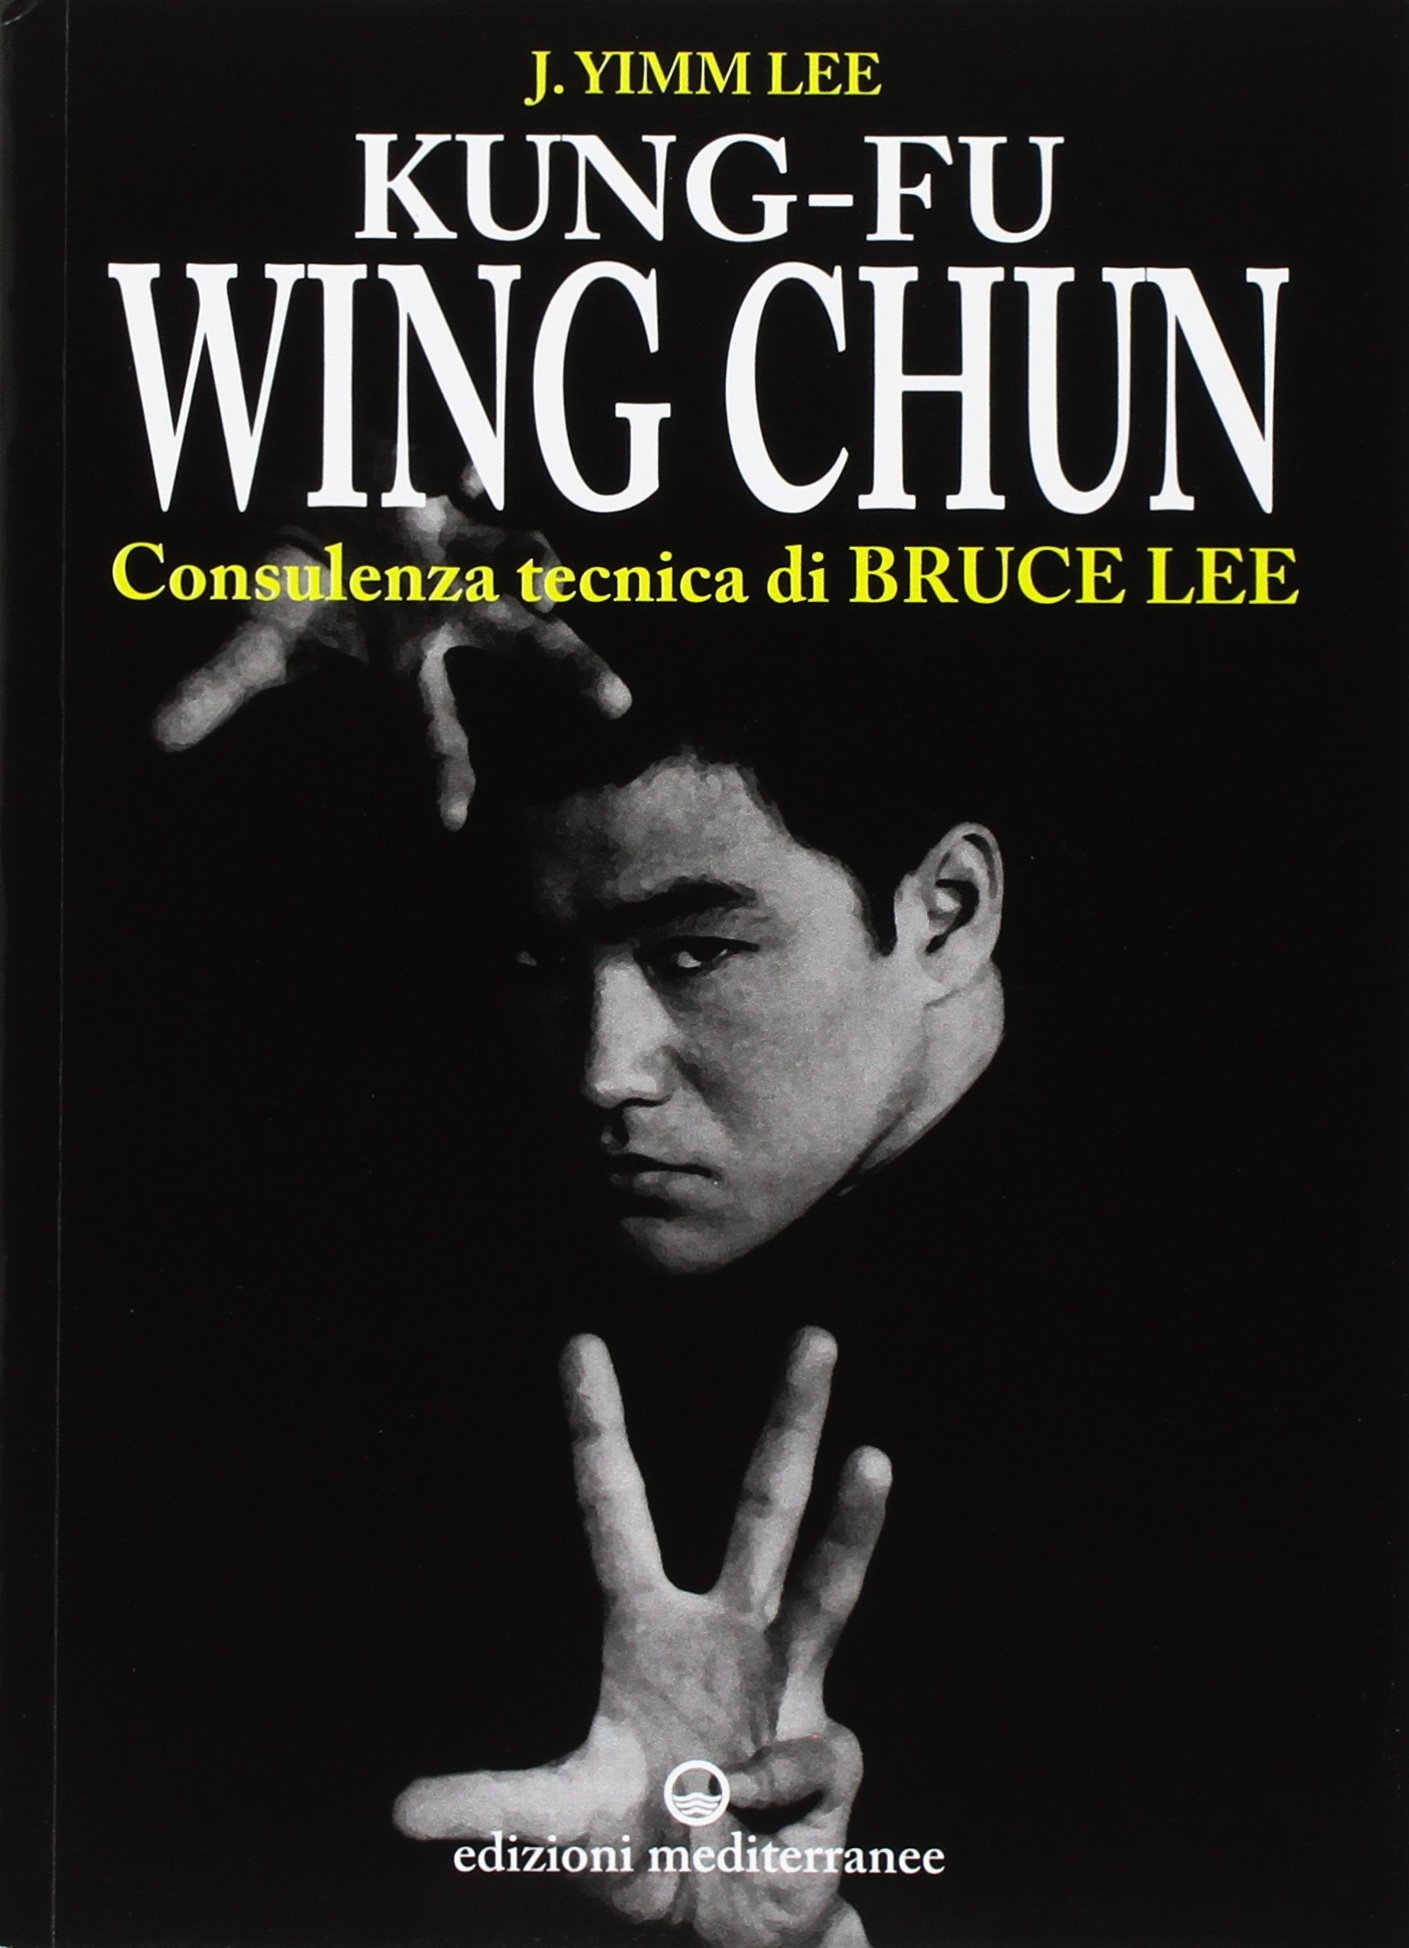 Yimm Lee Kung Fu Wing Chun Lee J Yimm 9788827212295 Amazon